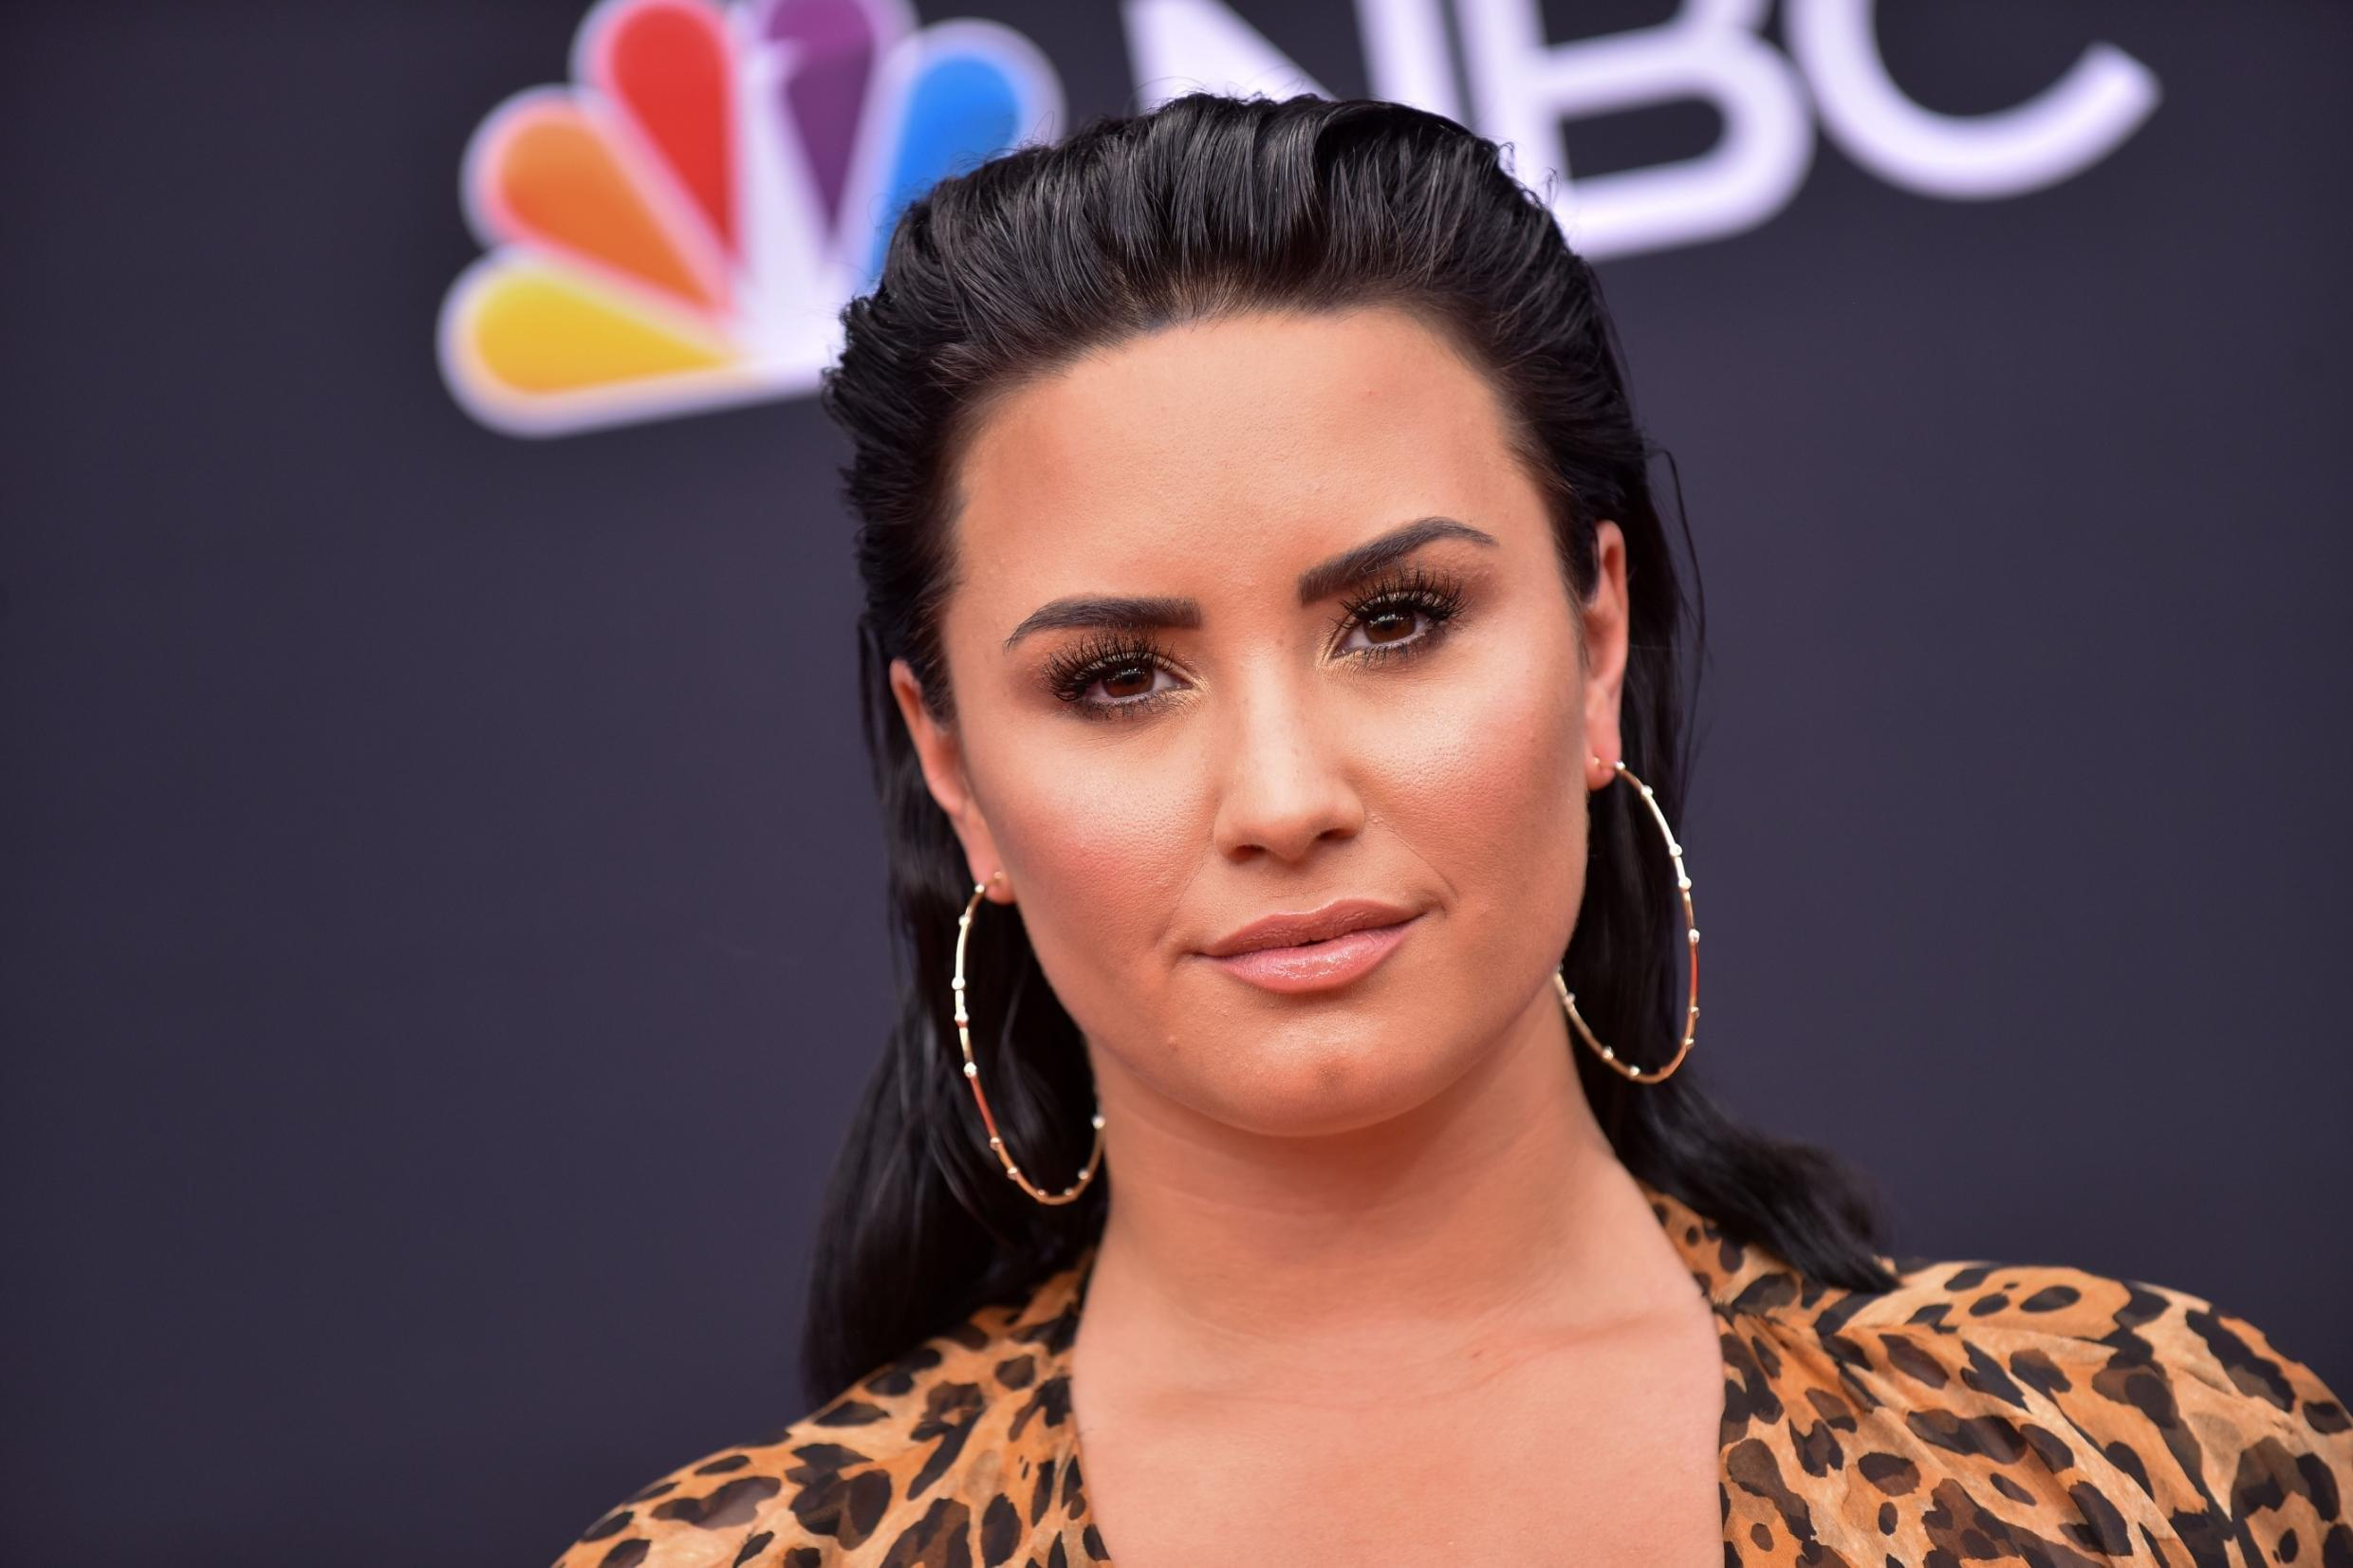 Demi Lovato Dyes Her Hair Blonde